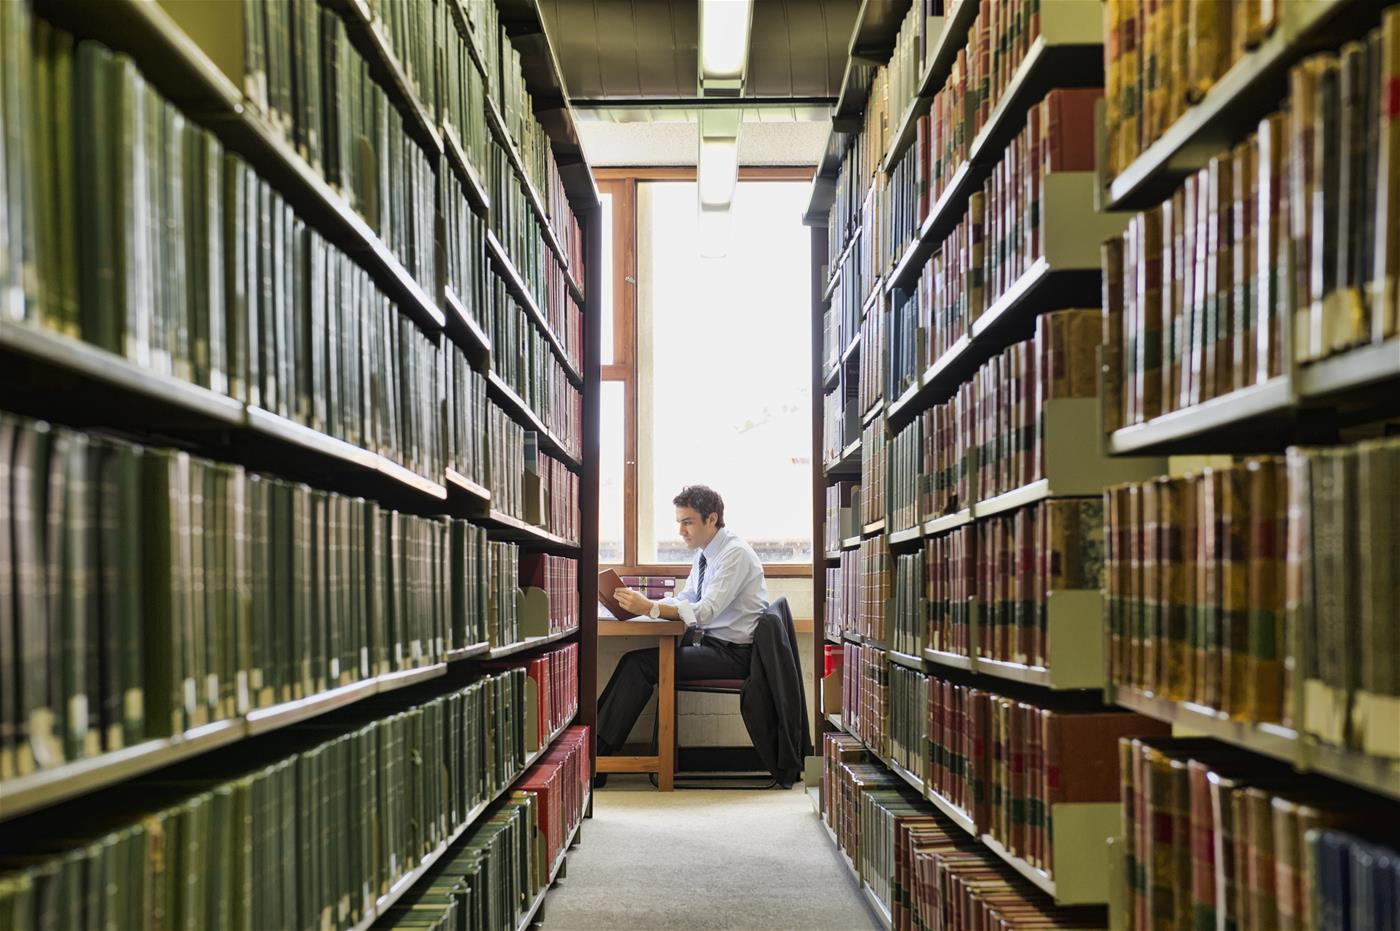 Man sitting in a library